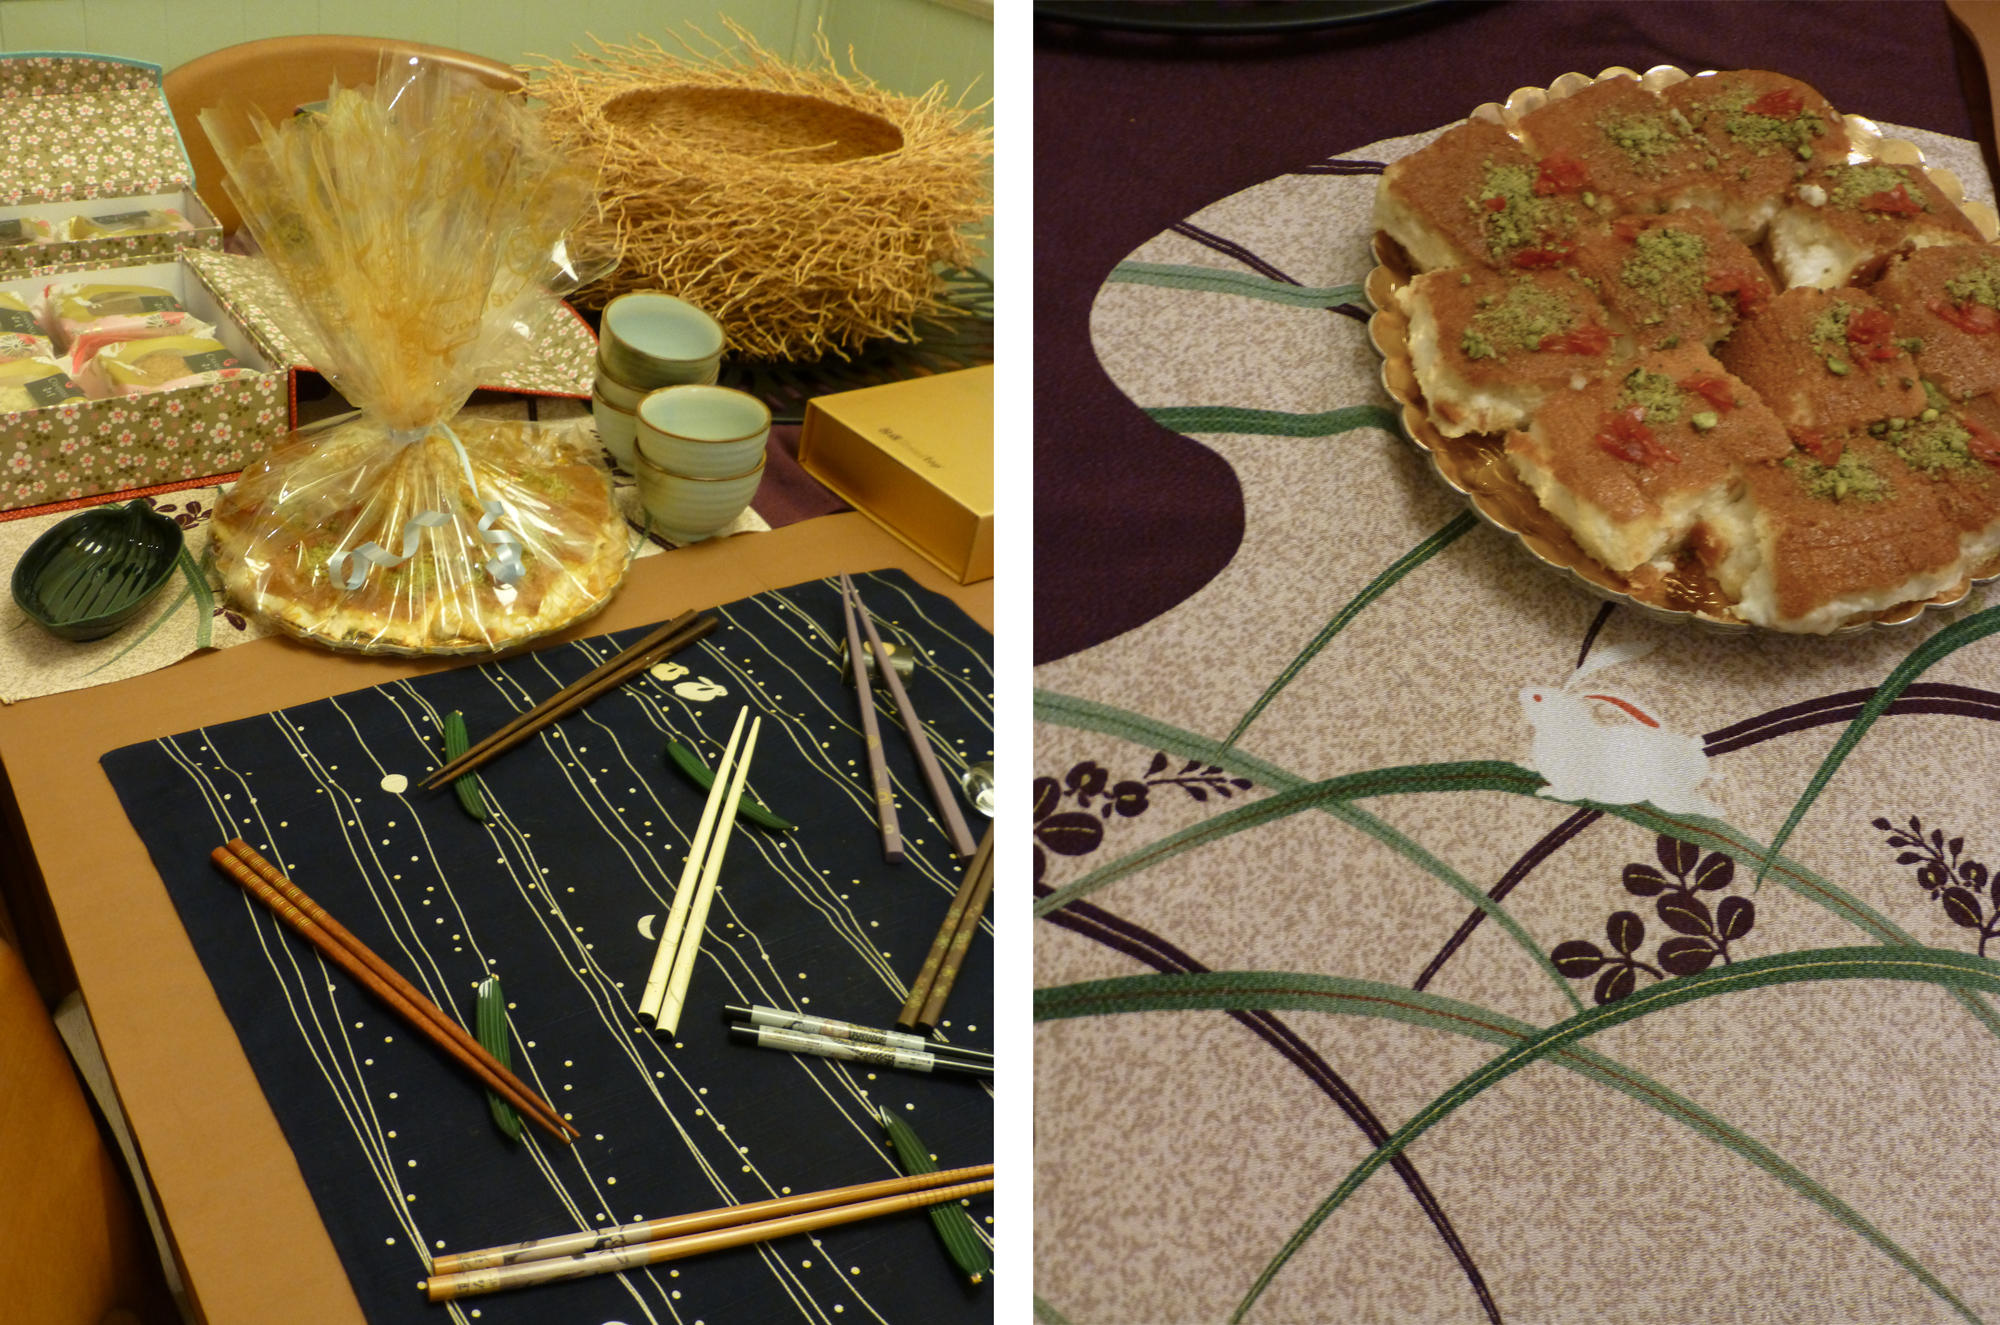 The table set with chopsticks, moon cakes and Arabic sweets.